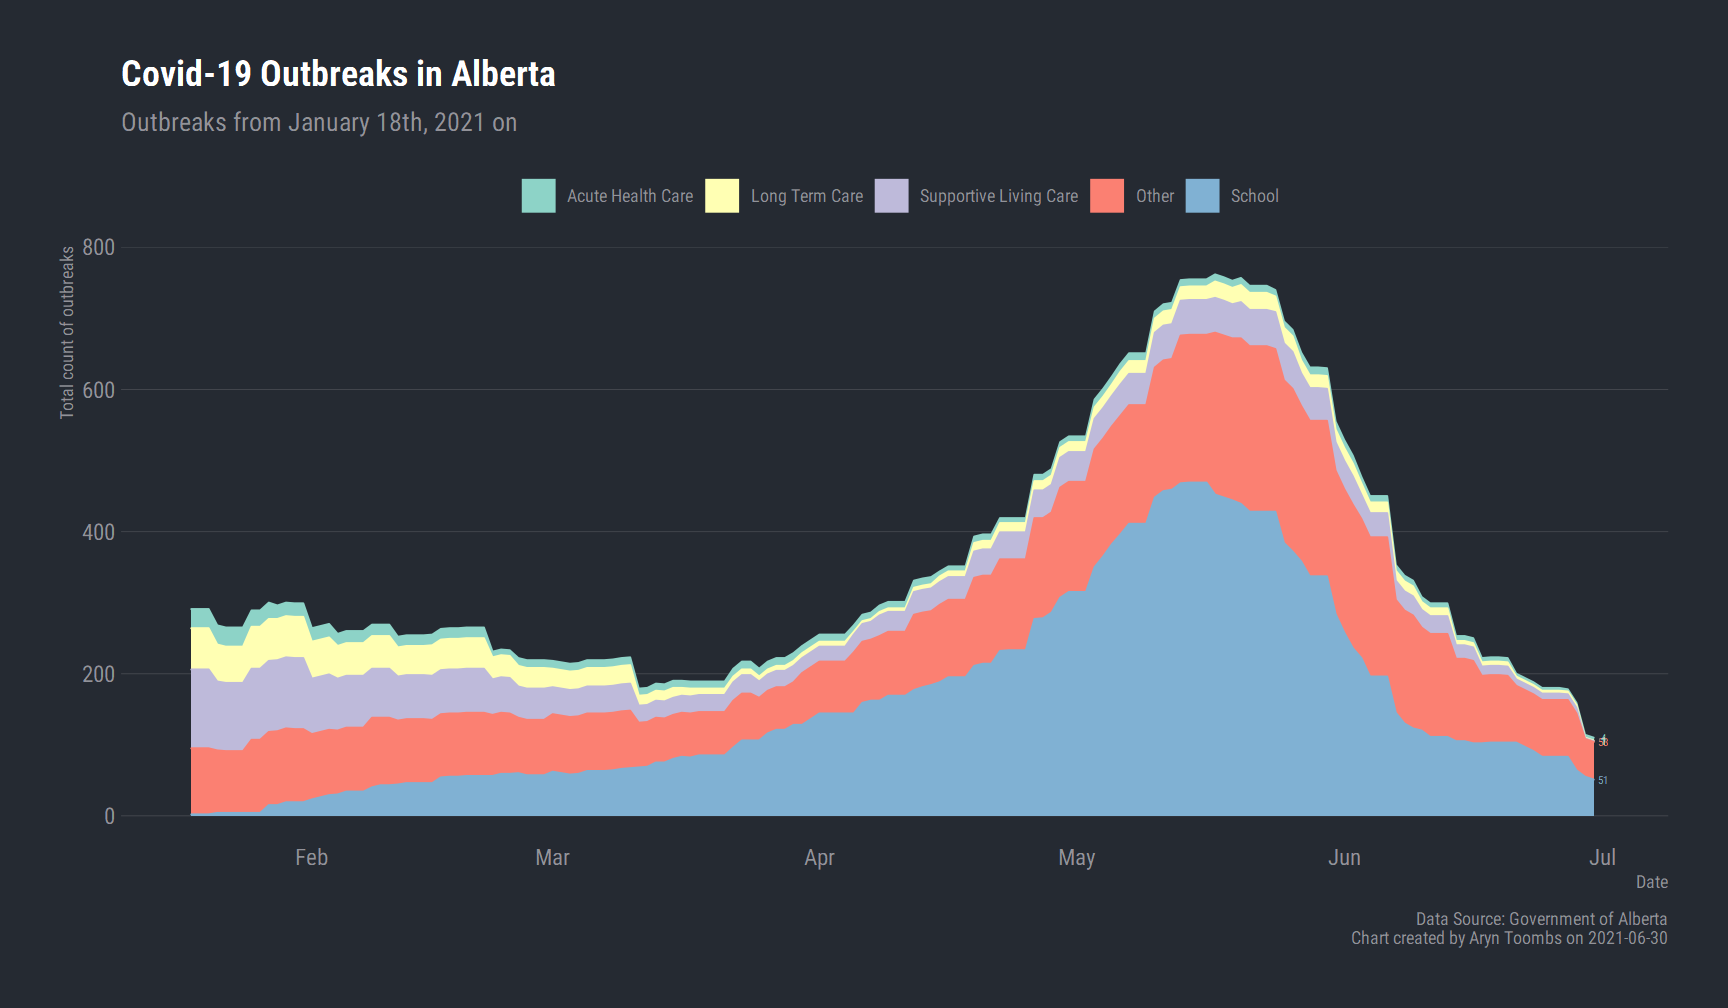 Outbreaks - Charting Alberta Covid